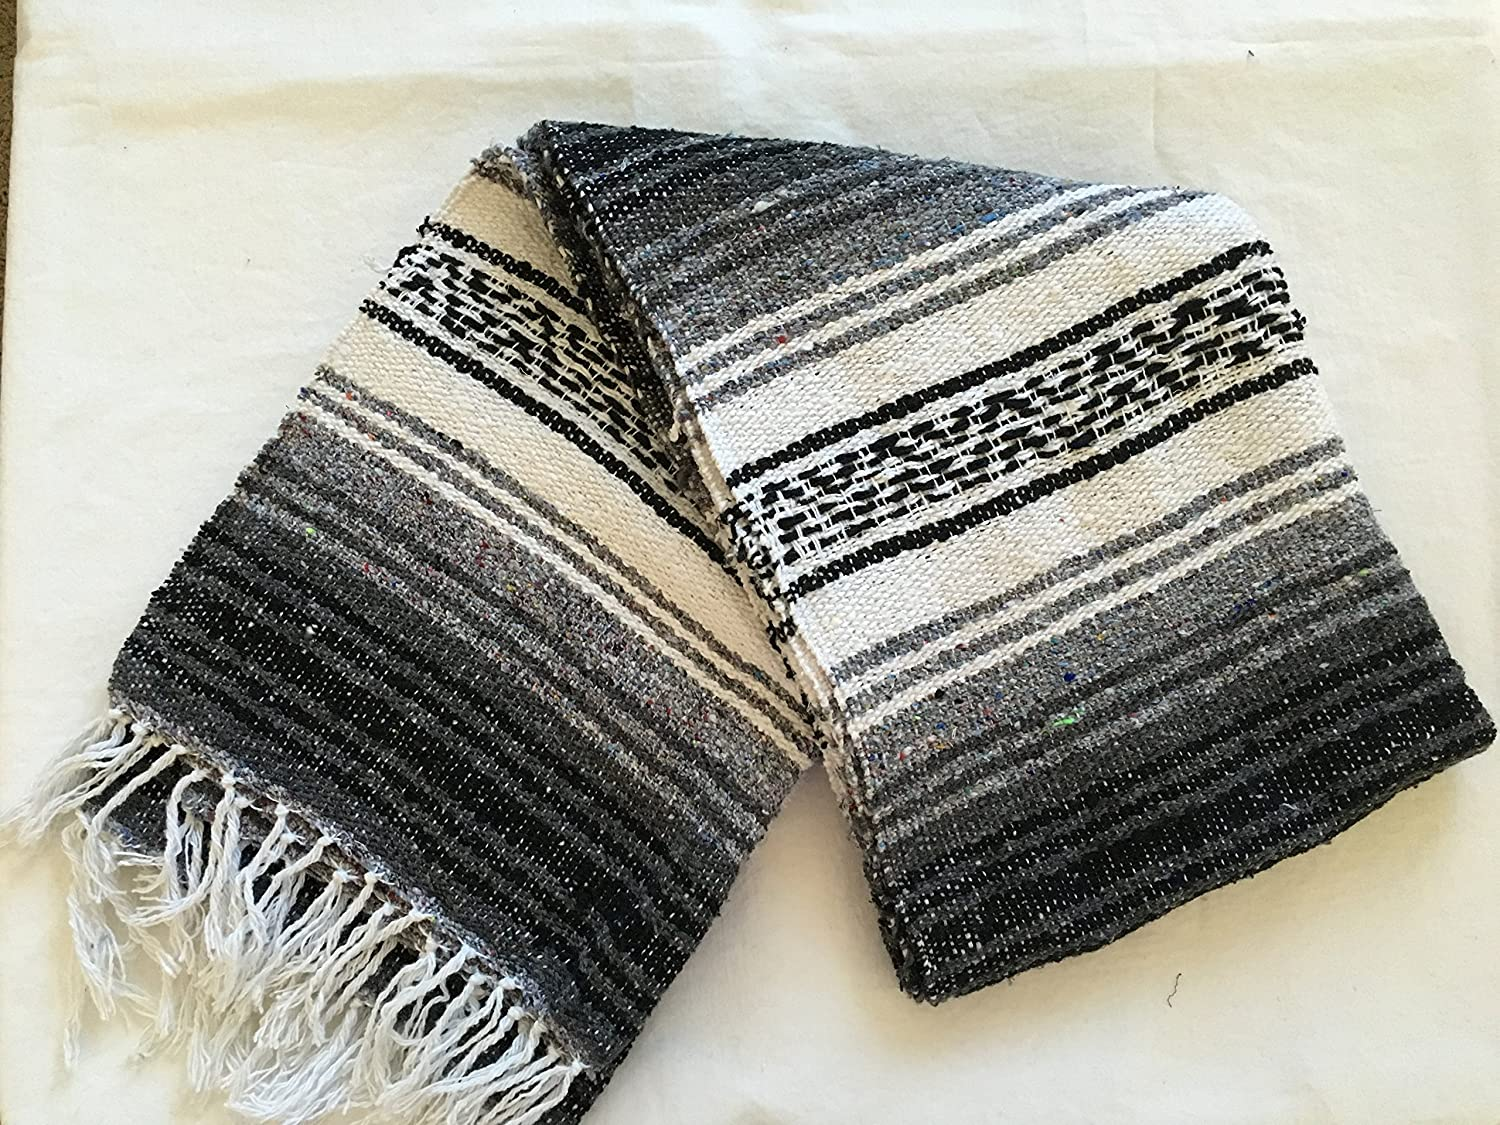 MEXIMARTs Authentic Mexican Falsa Blanket Hand Woven Black